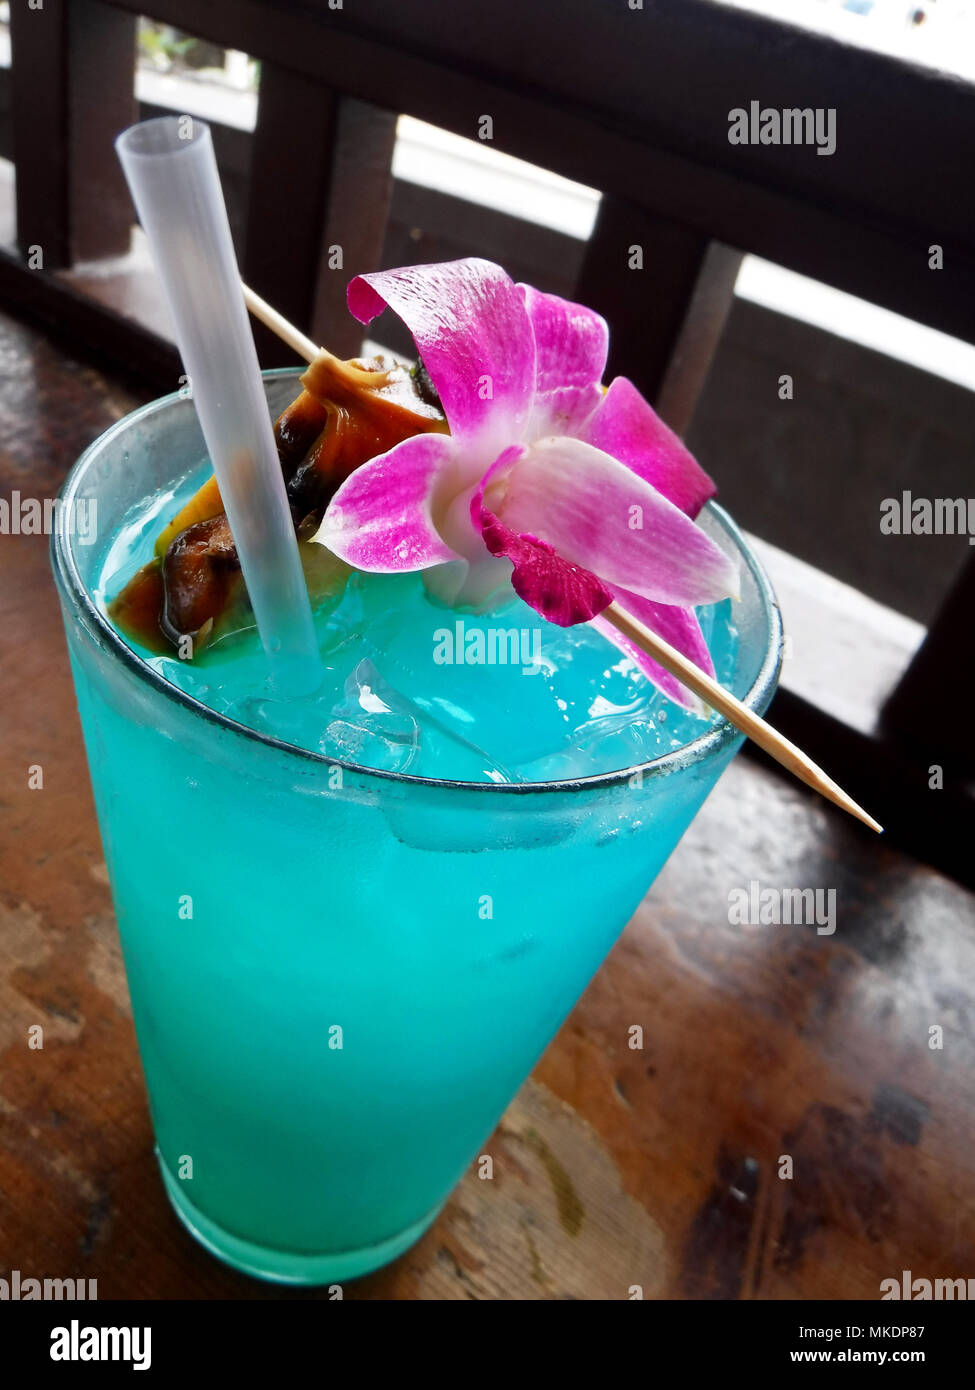 Cocktail drink with flower - Stock Image